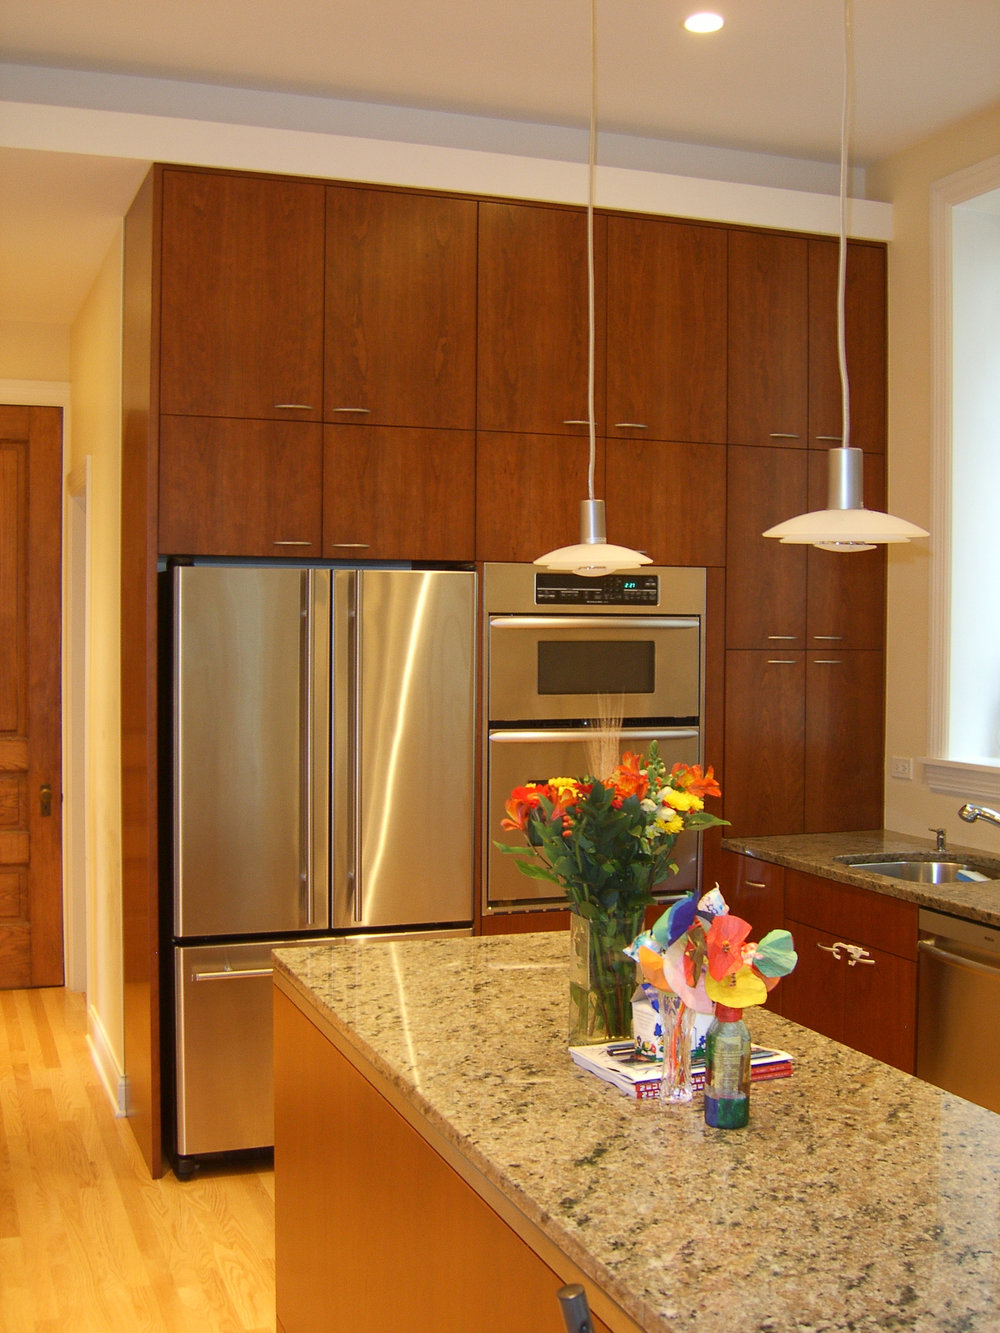 Fullerton_Parkway_Residence_Interior_Kitchen_Full_Height_Cabinetry.jpg